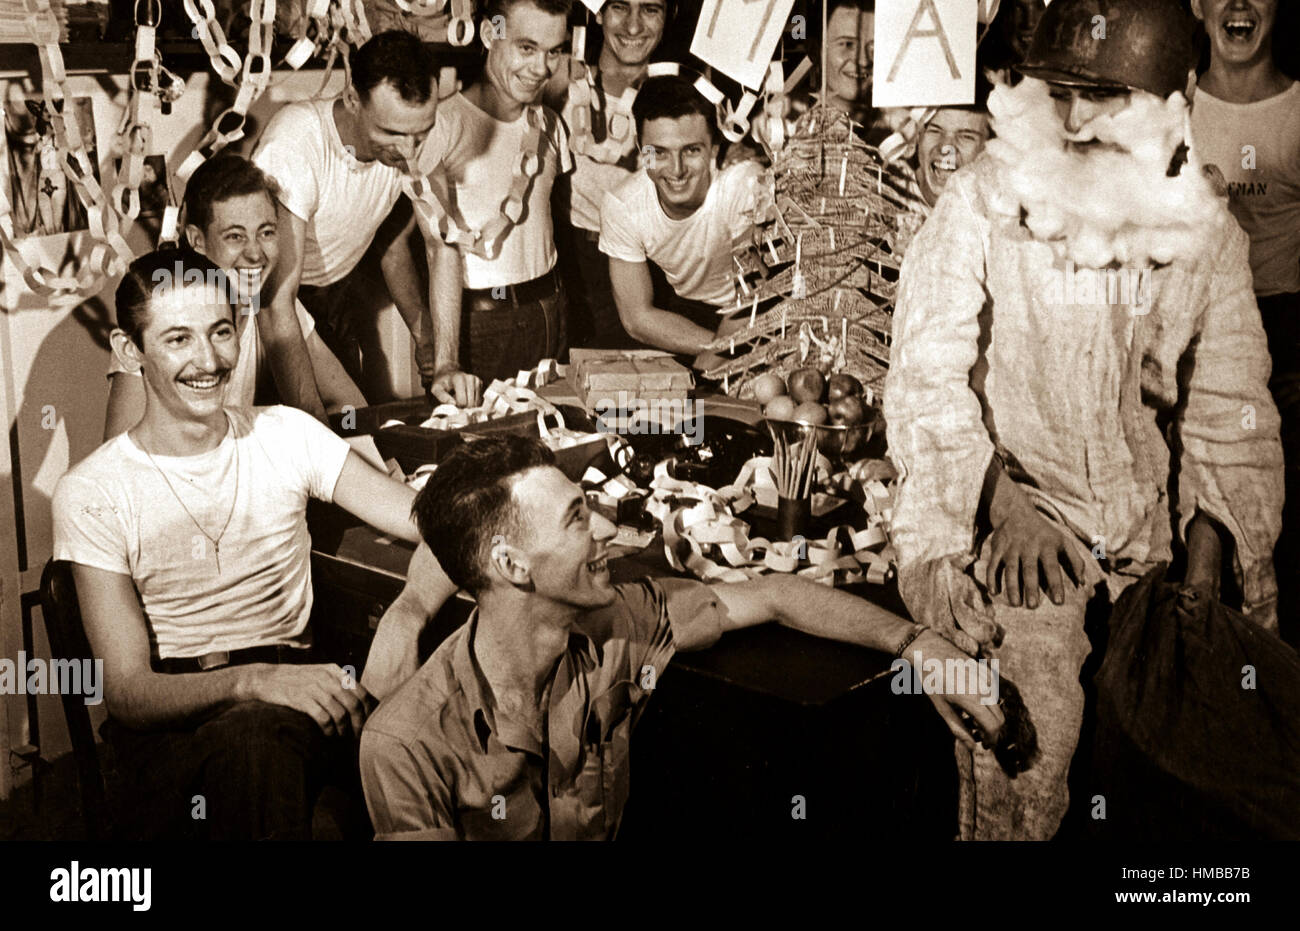 personnel of uss lexington celebrate christmas with make shift decorations and a firefighting helmeted